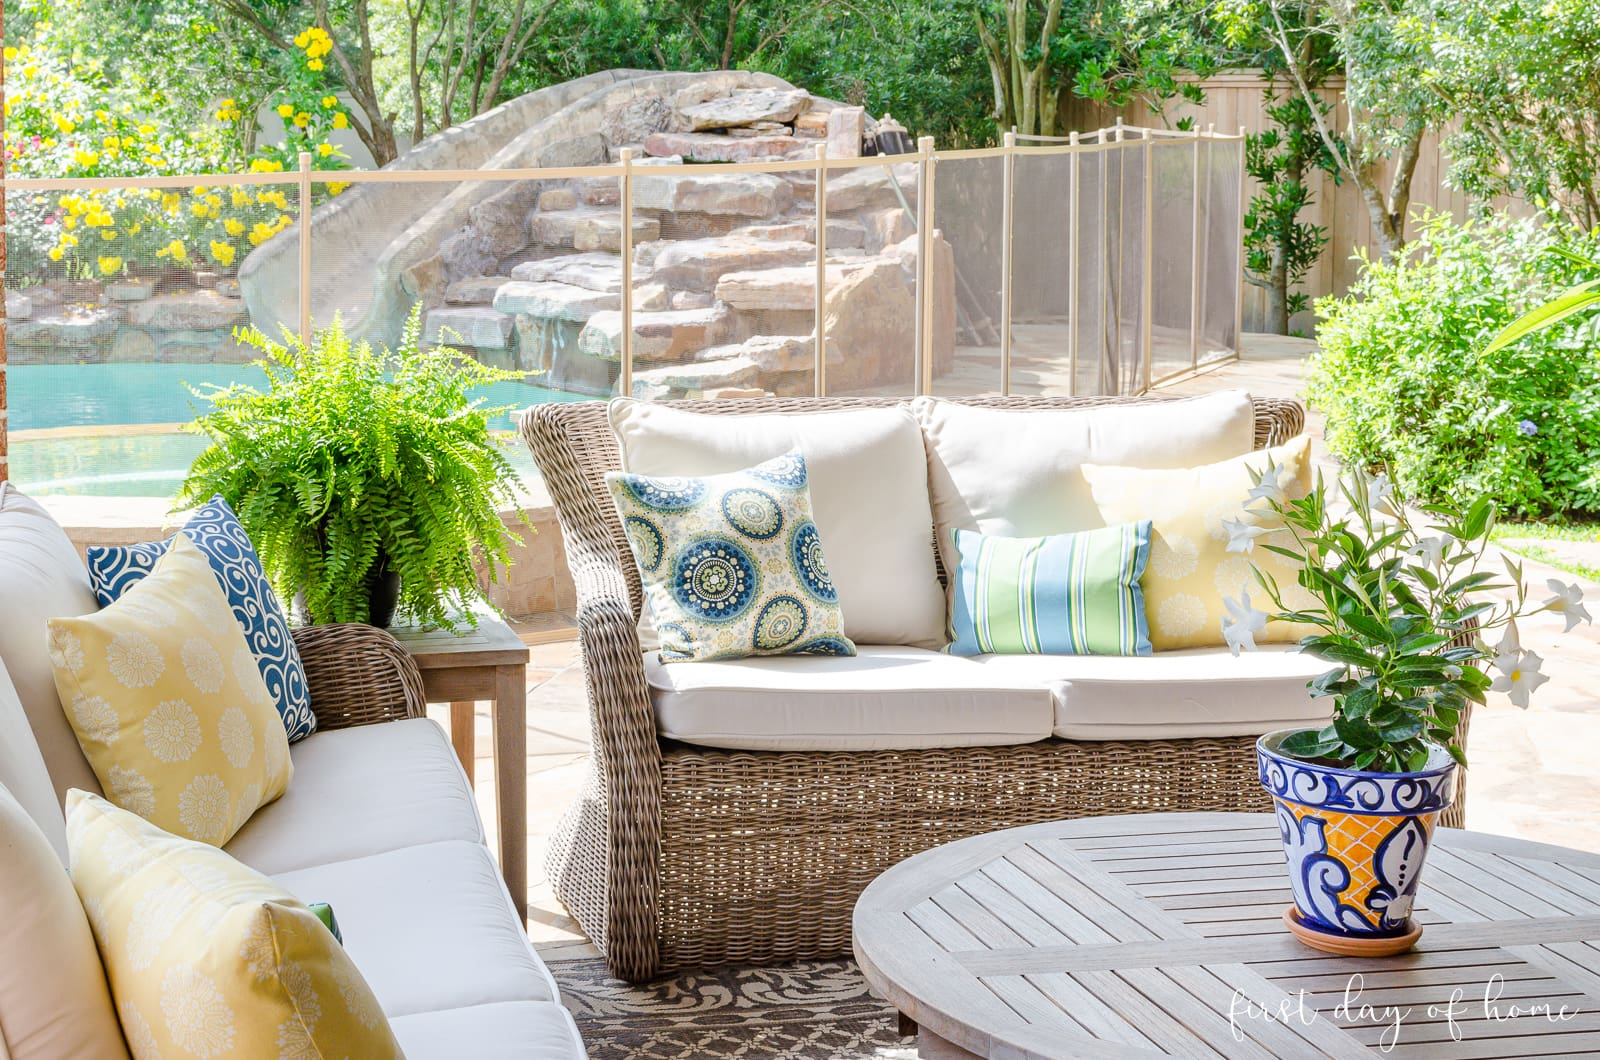 Outdoor patio furniture with white cushions and blue and yellow pillows